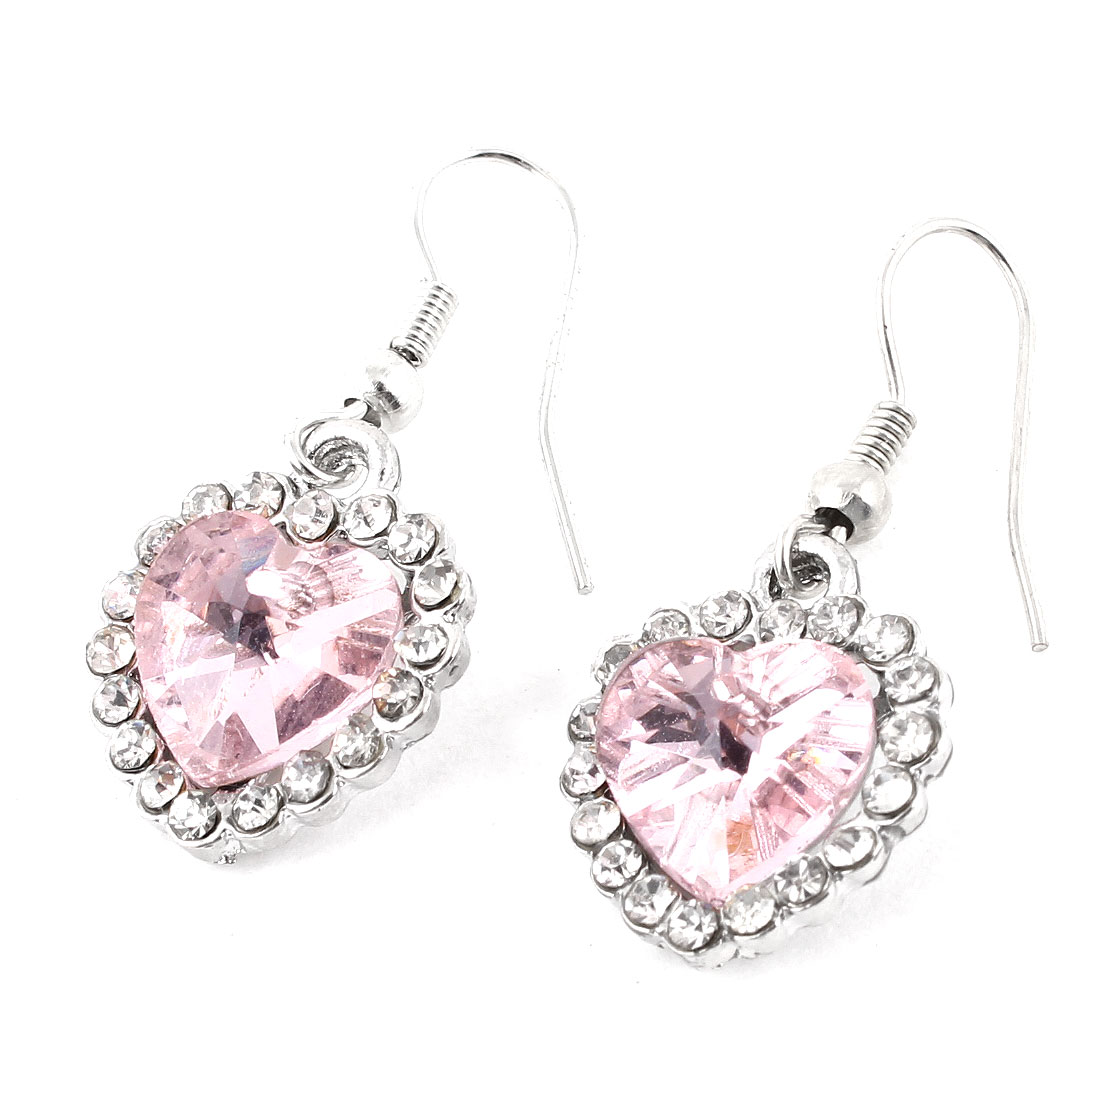 Pair Pink Faceted Bead Heart Pendant Fish Hook Earrings Silver Tone for Woman